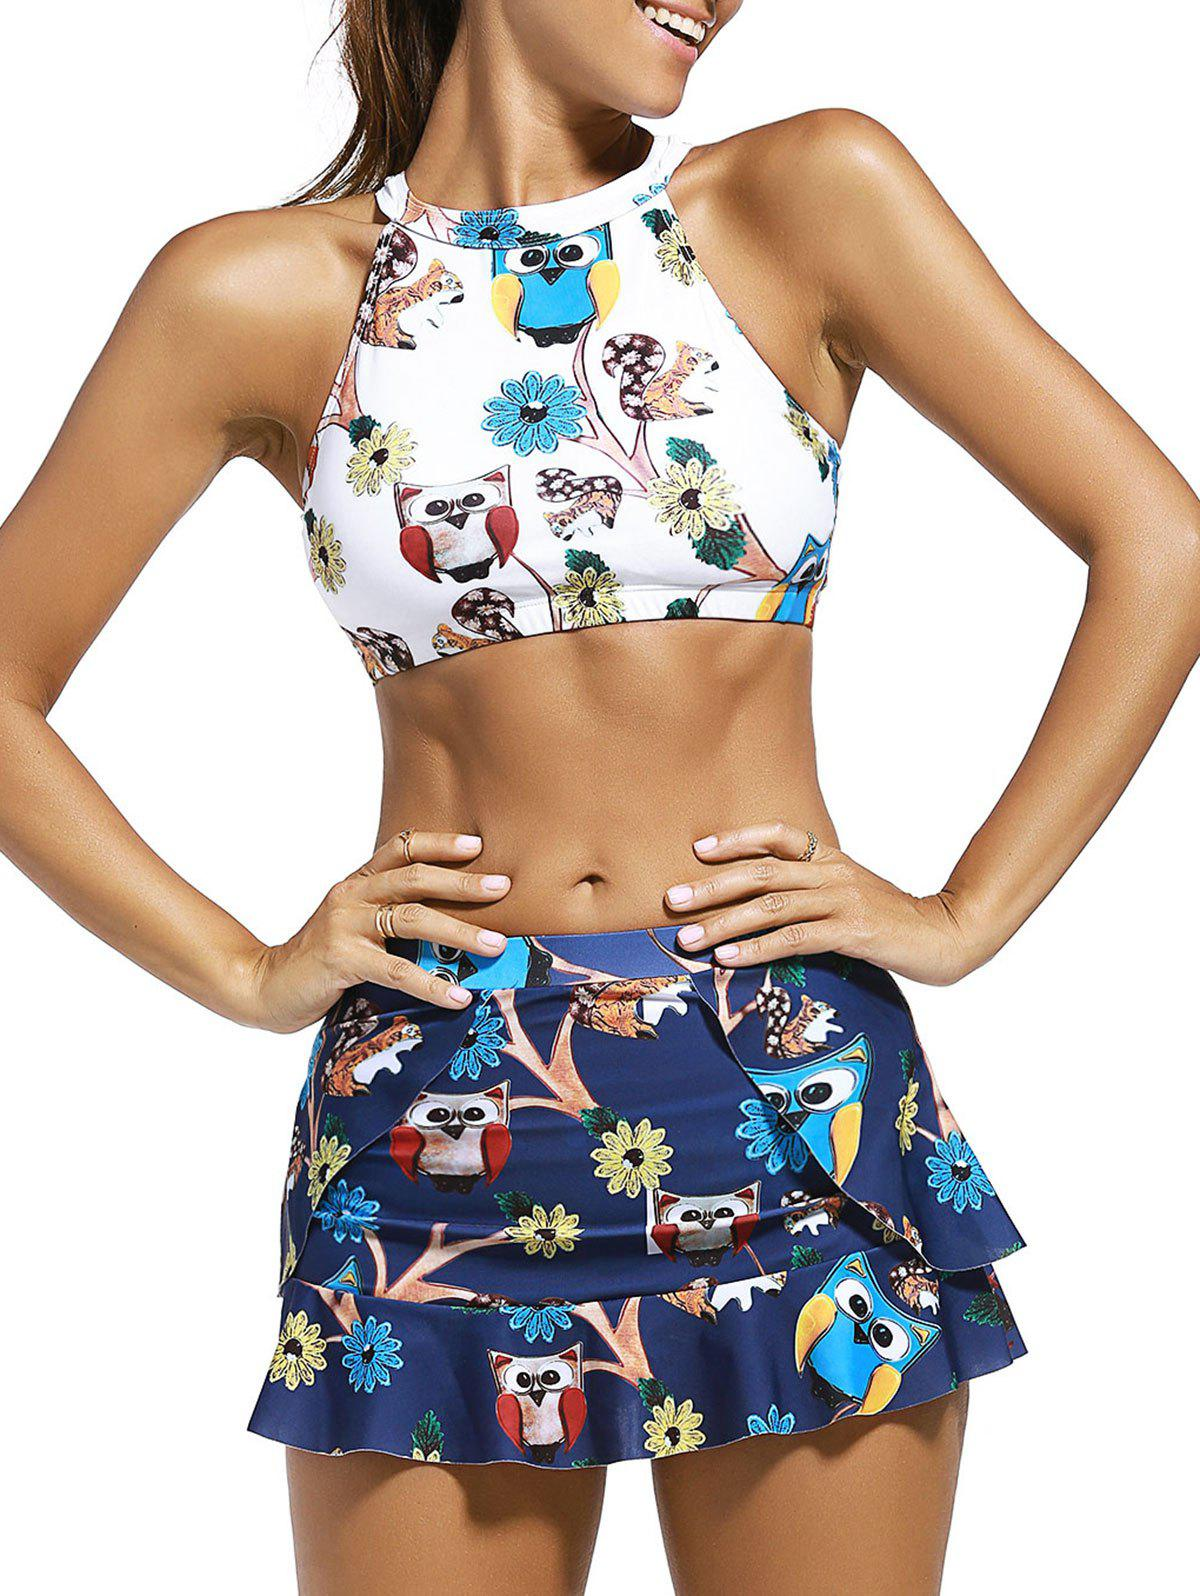 Buy High Neck Animal Print Crop Top with Skirt + Briefs Swimsuit